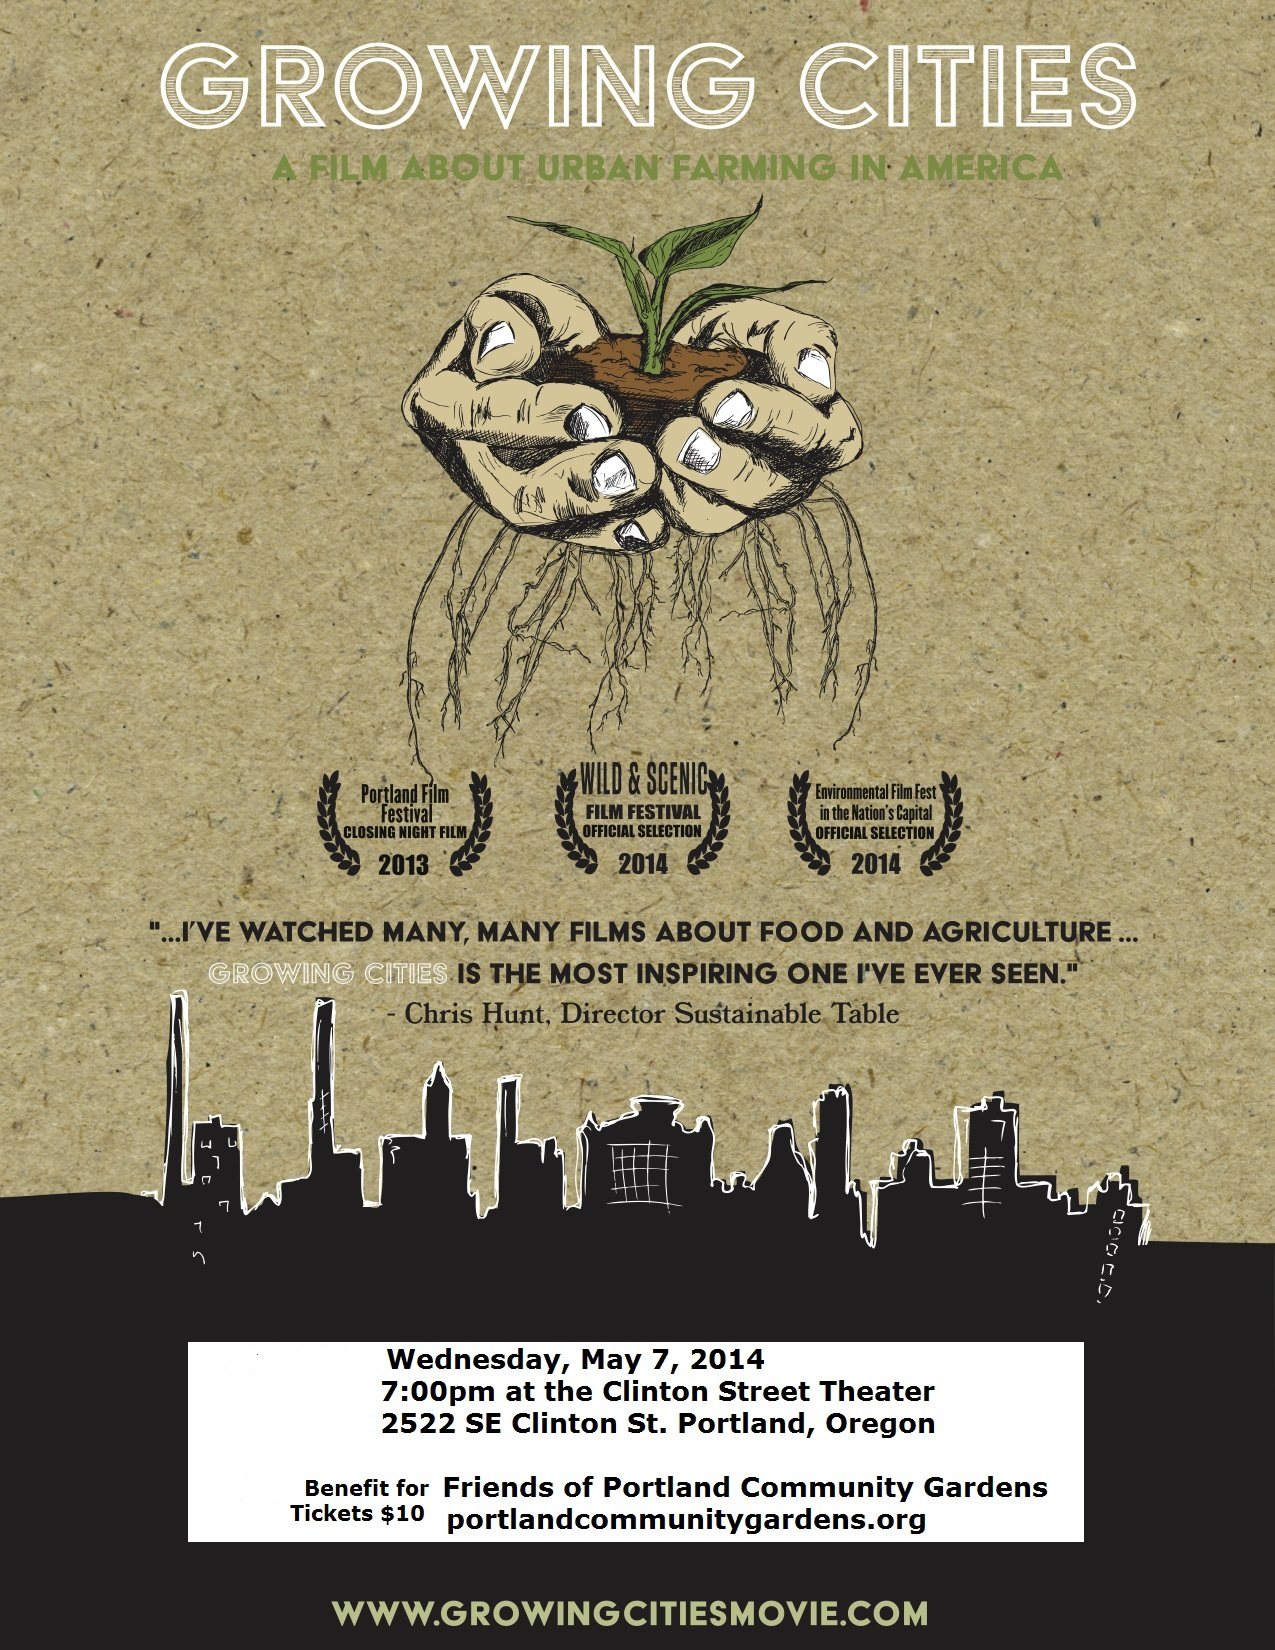 Growing Cities - A Film about Urban Farming